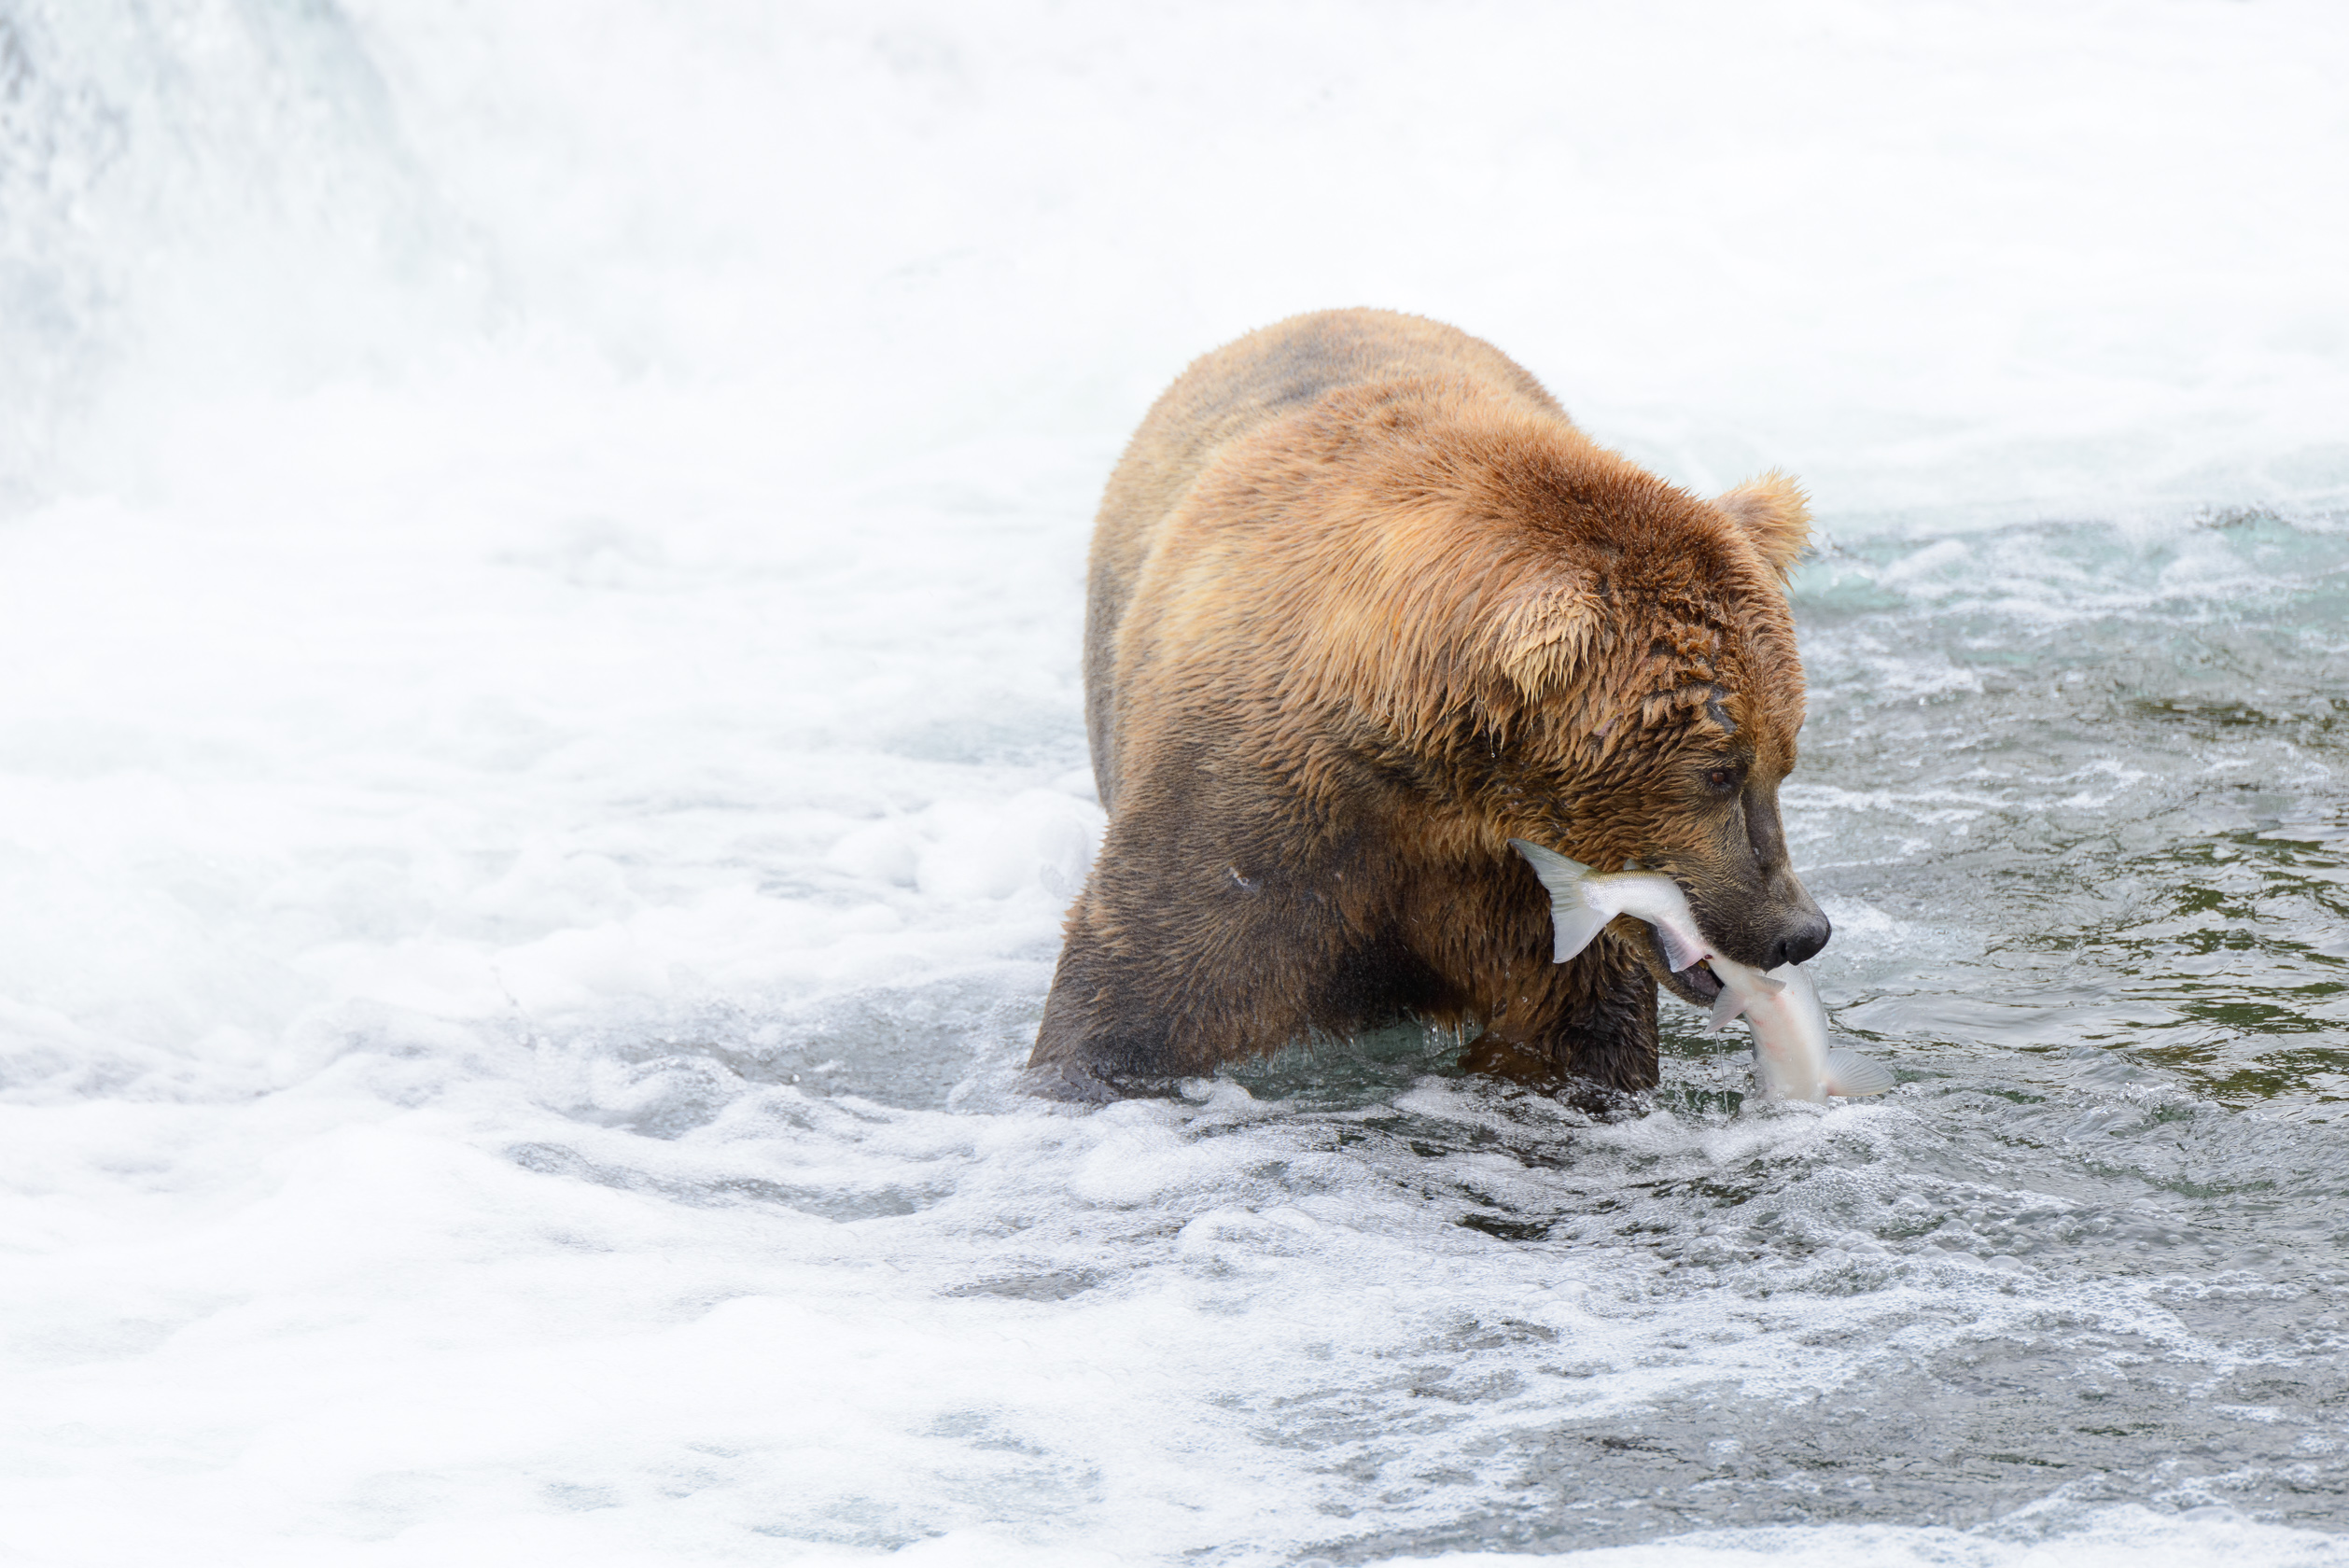 Katmai Bear Viewing, for the New York Times